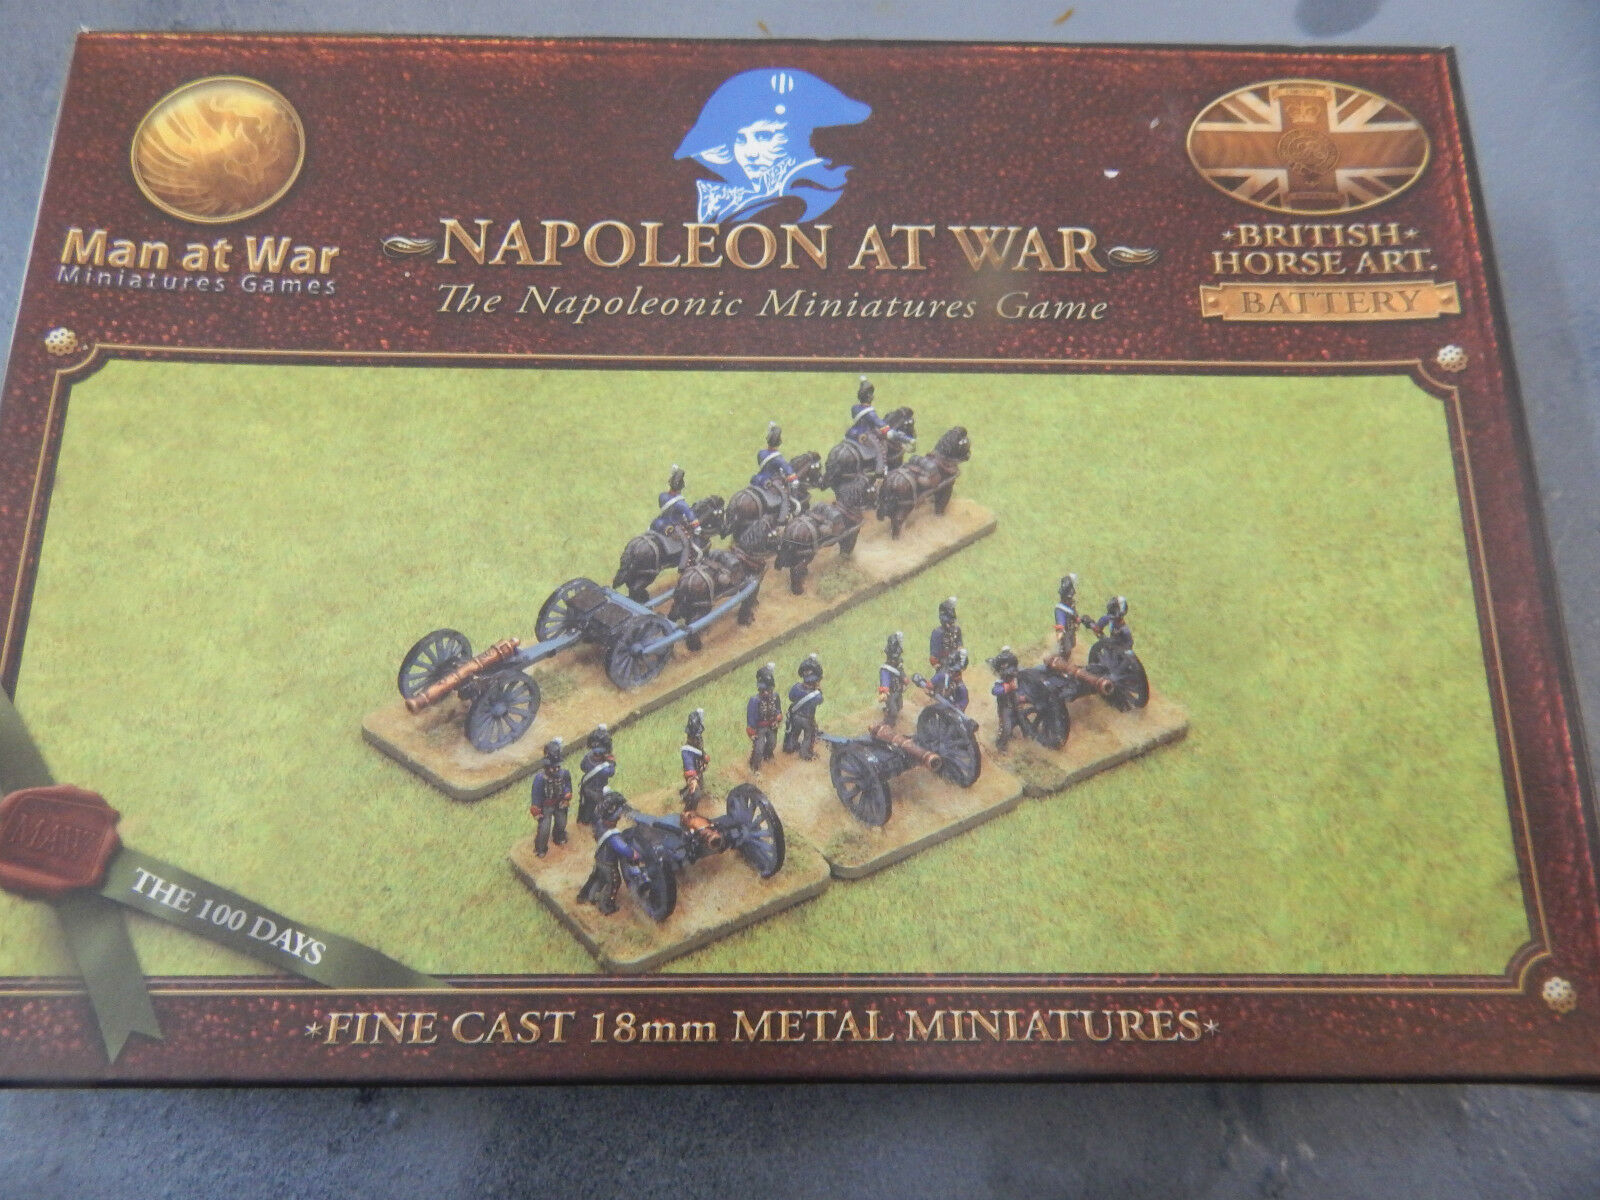 18mm metal boxed Napoleonic British Horse Artillery